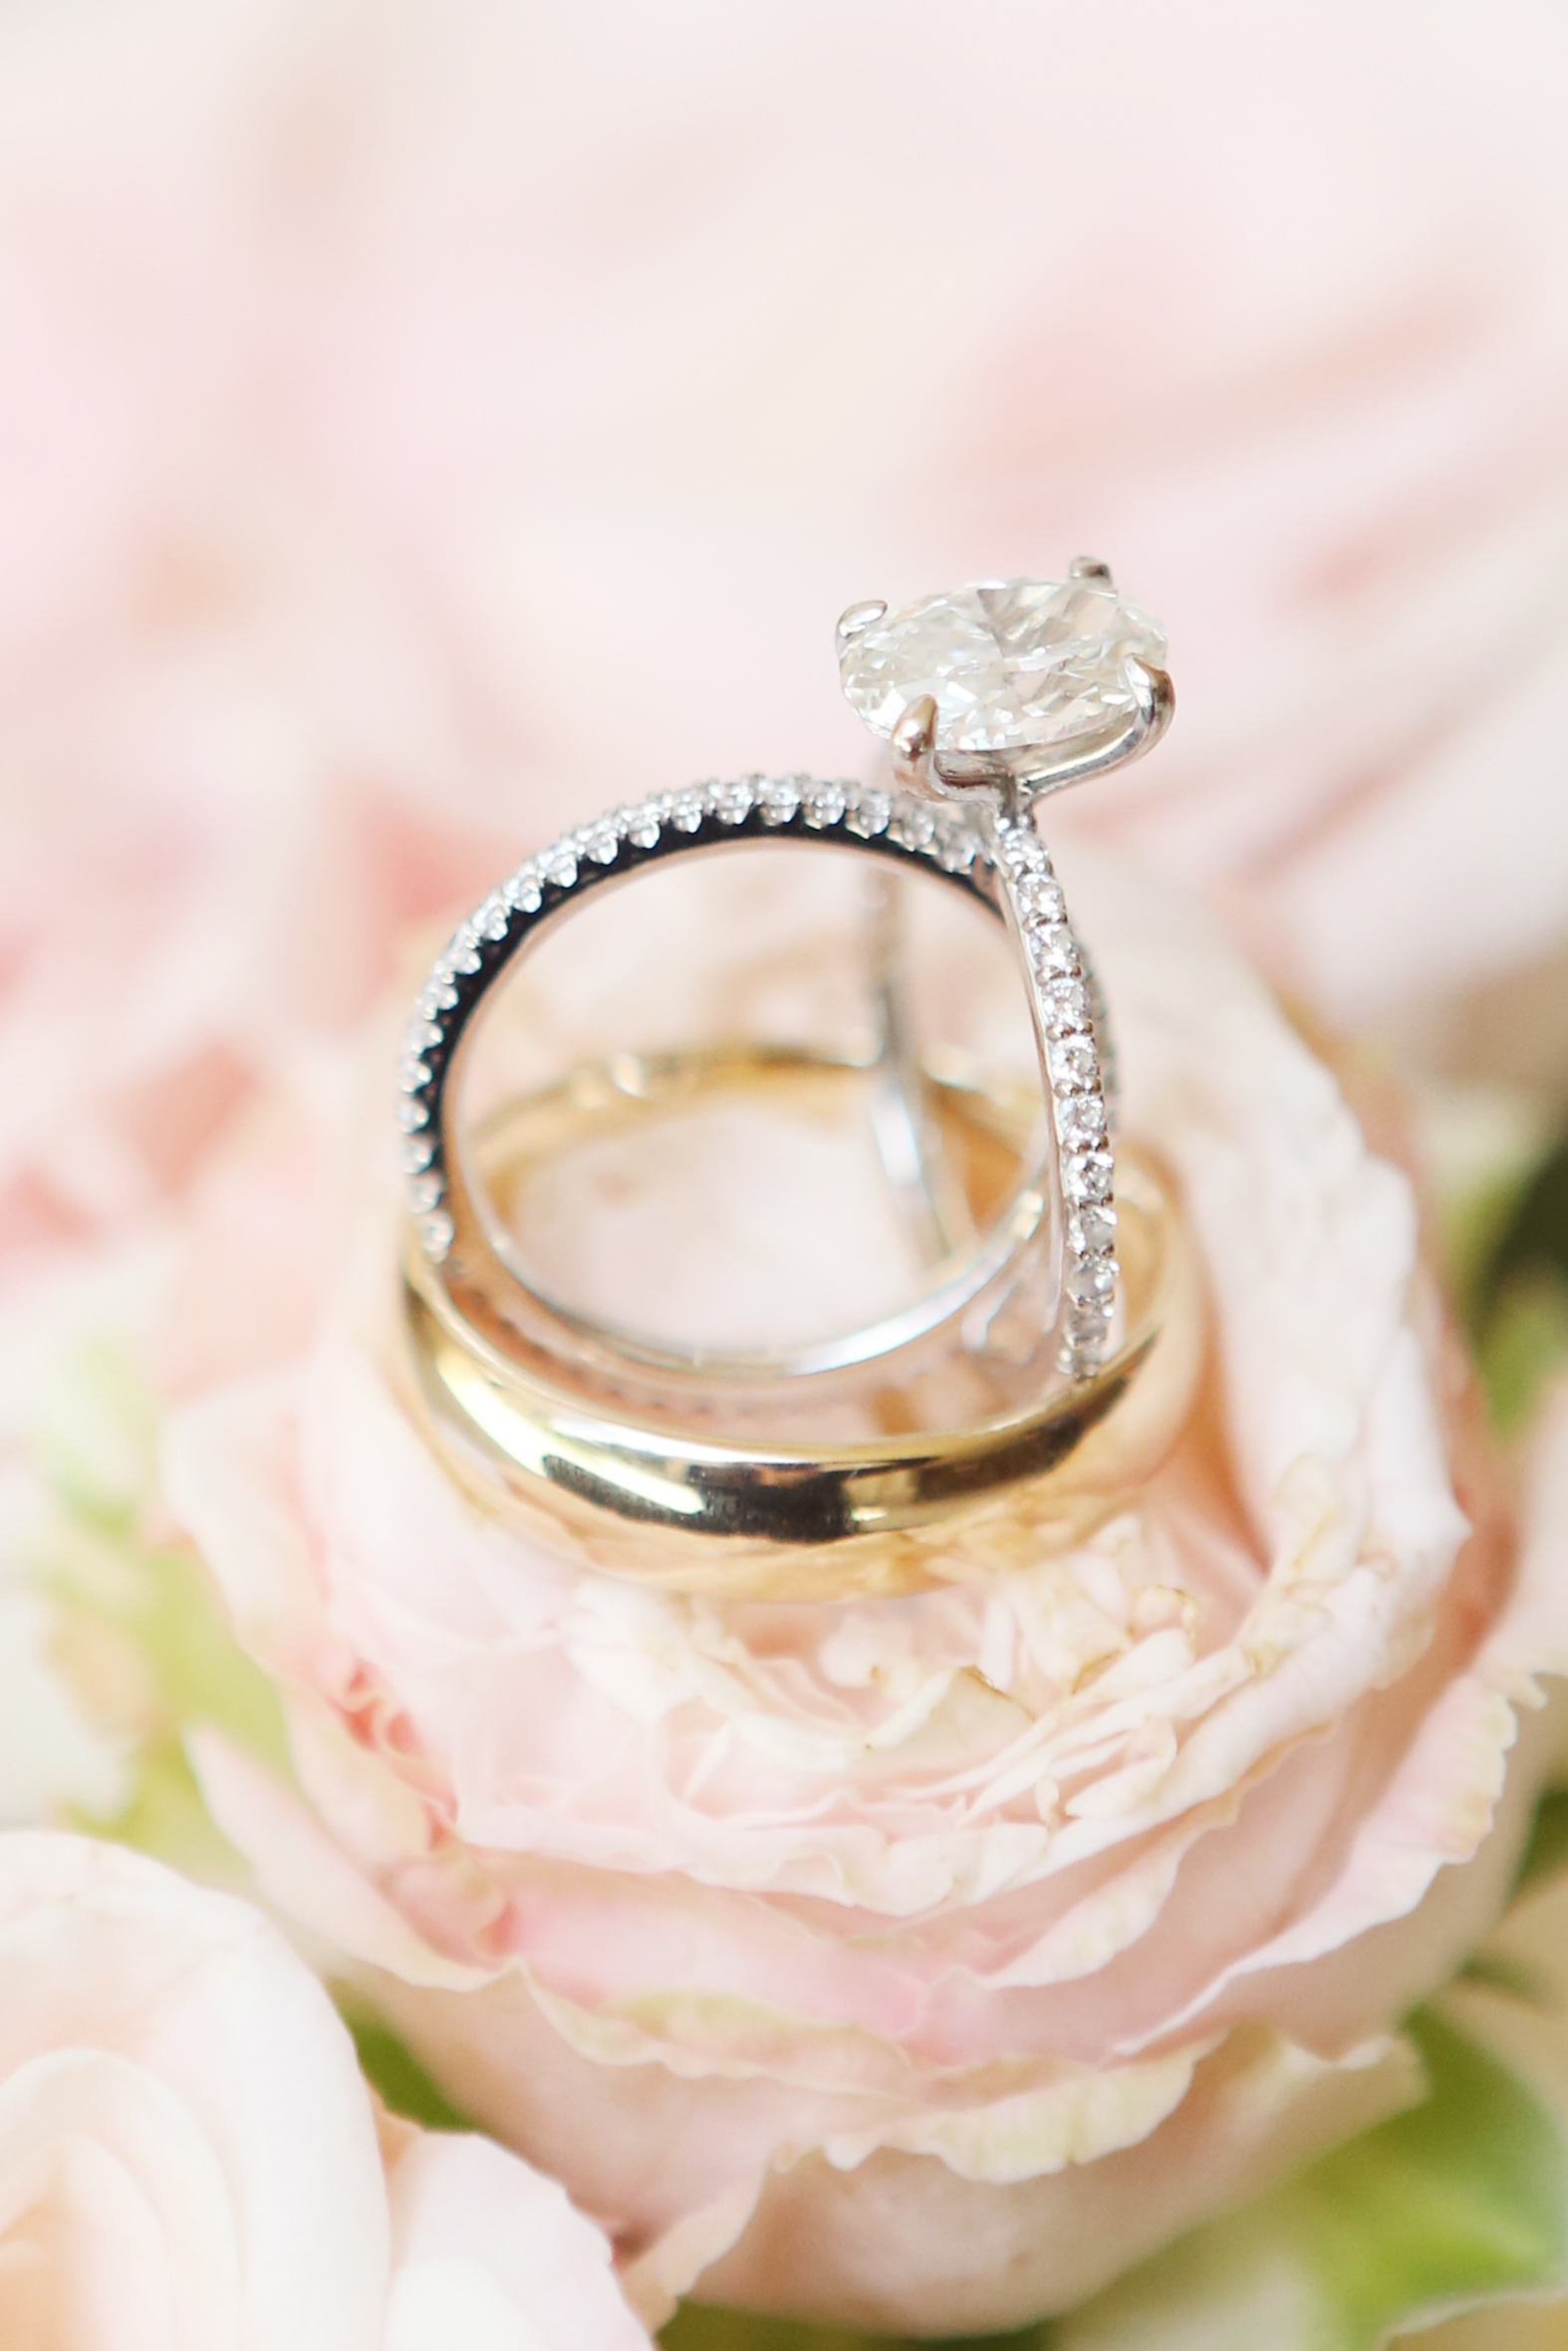 Wedding and Engagement Ring Photography by Eliza Kennard